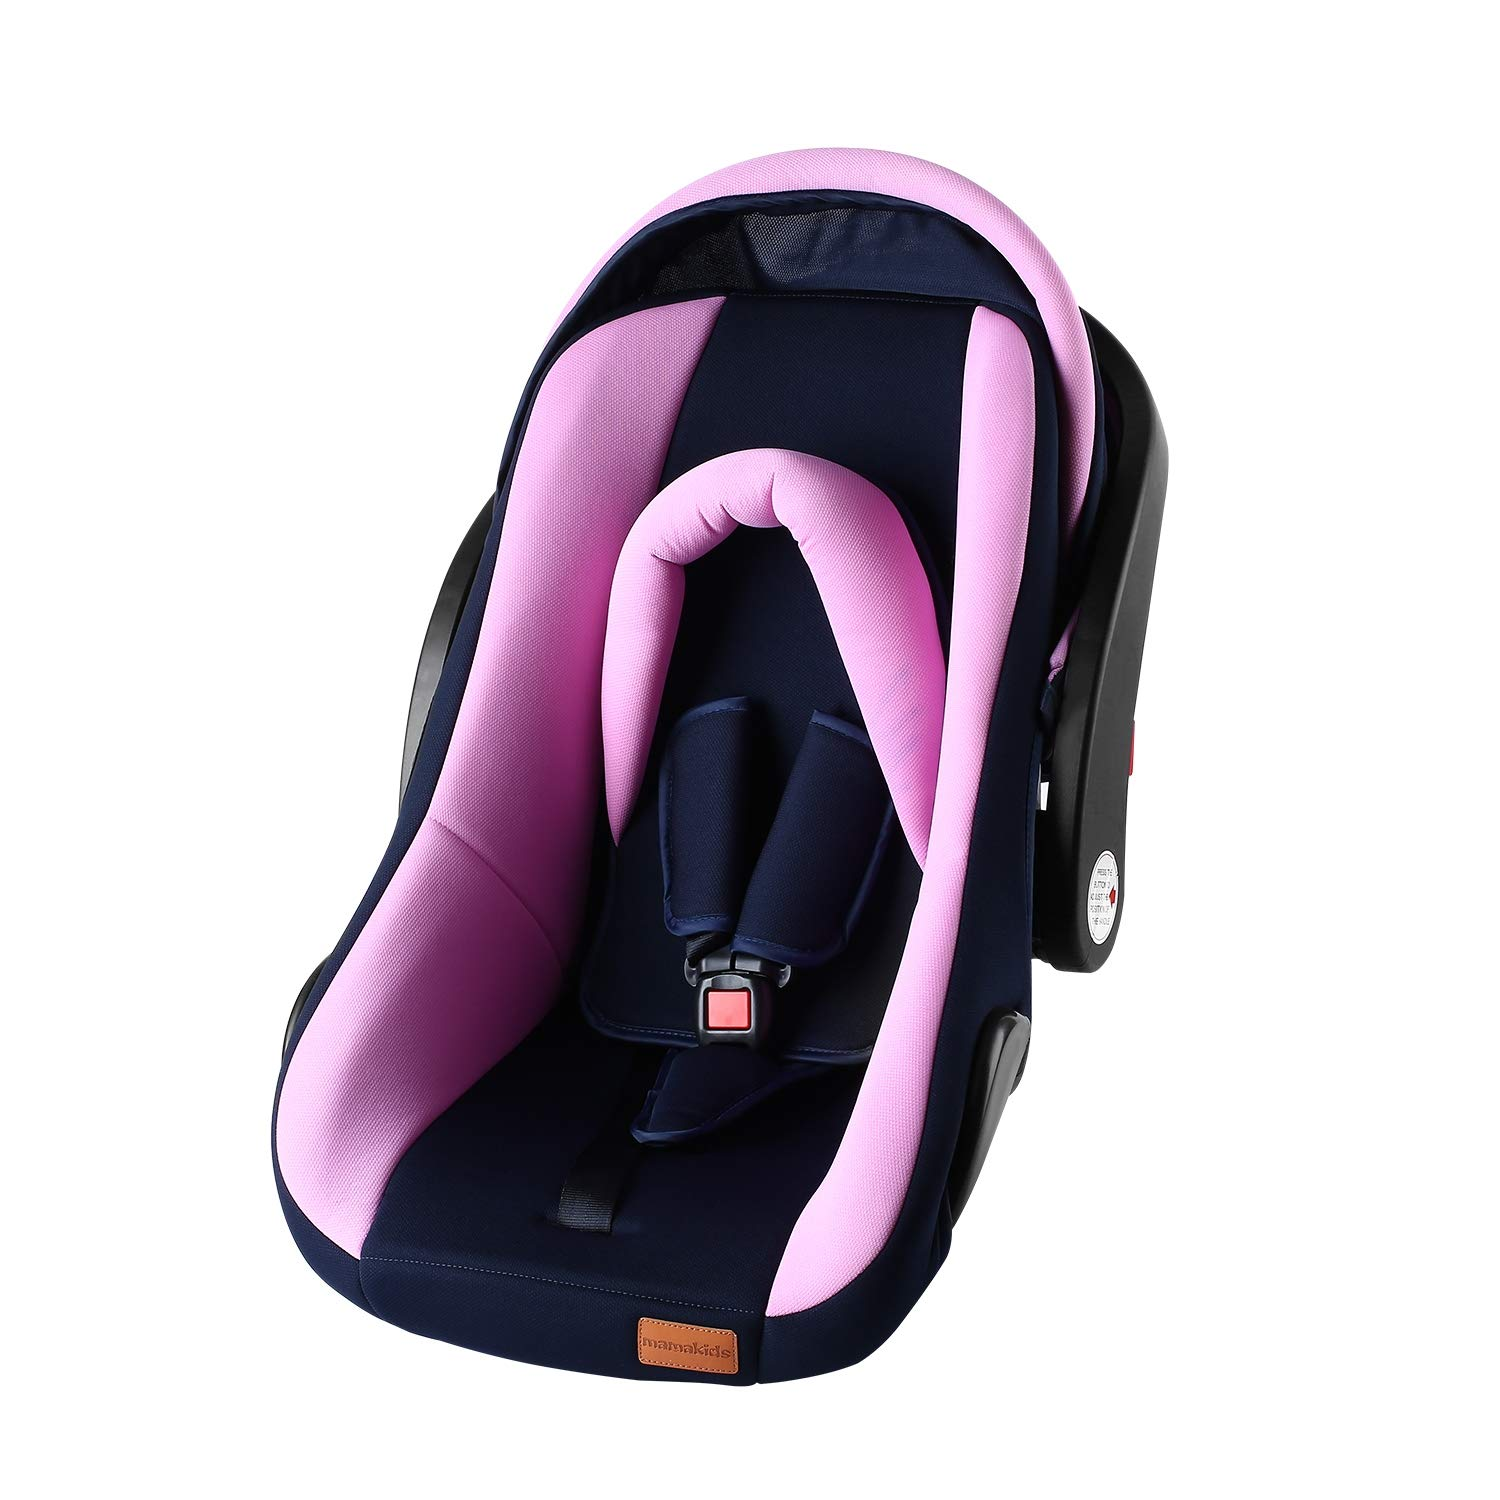 0-9 Months Breathable Children 3 in 1 Car Safety Seat Basket Rocking Chair with Head Cover Three-Point Seat Belt